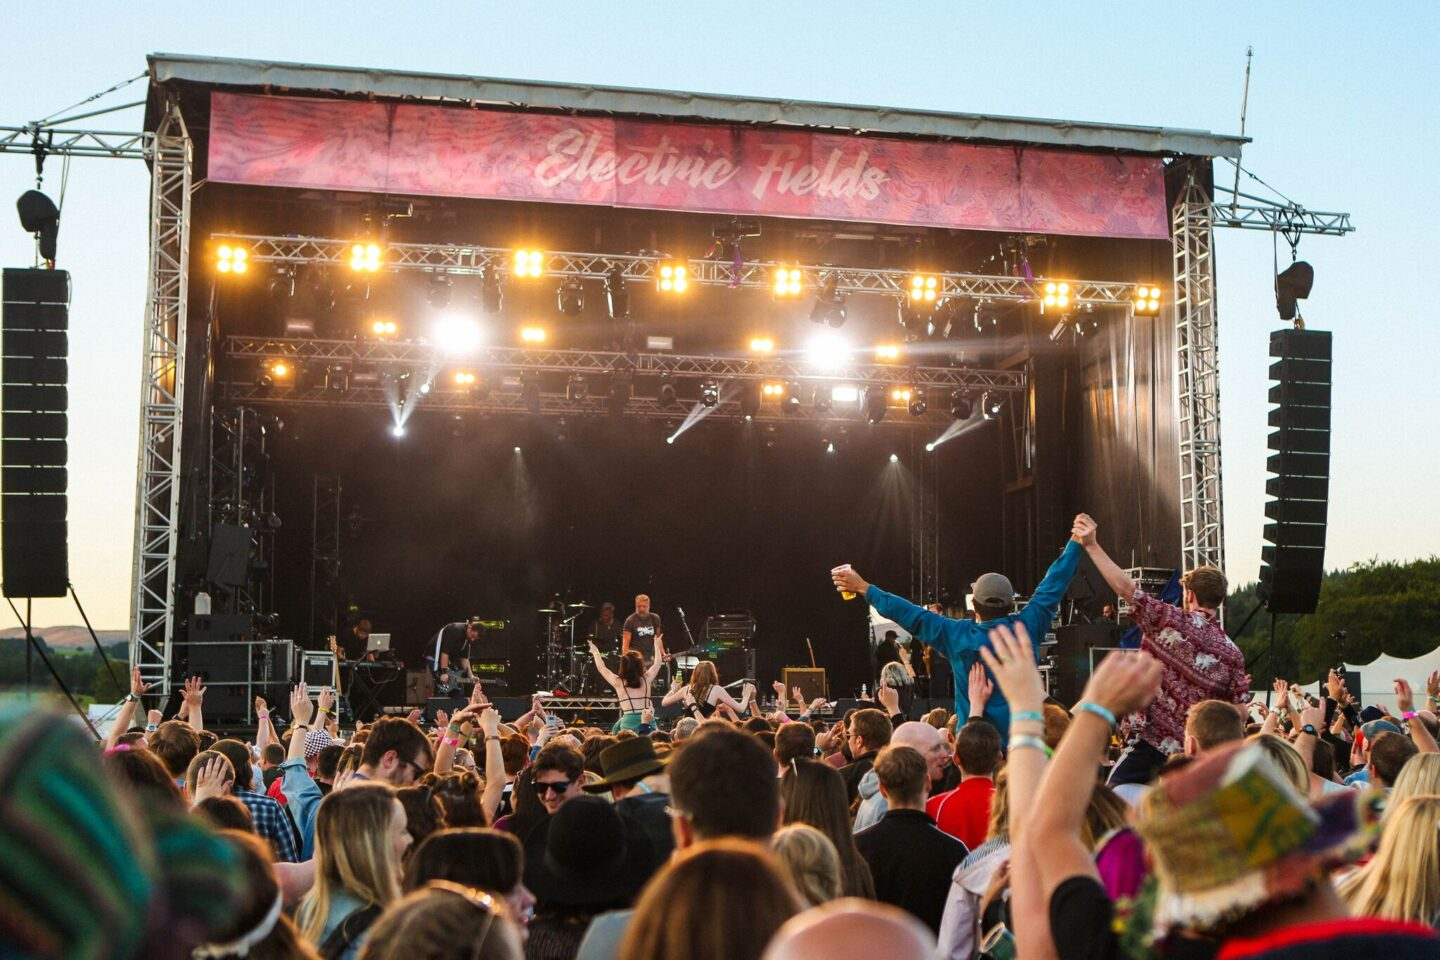 Why we have chosen Electric Fields as our first family camping festival…